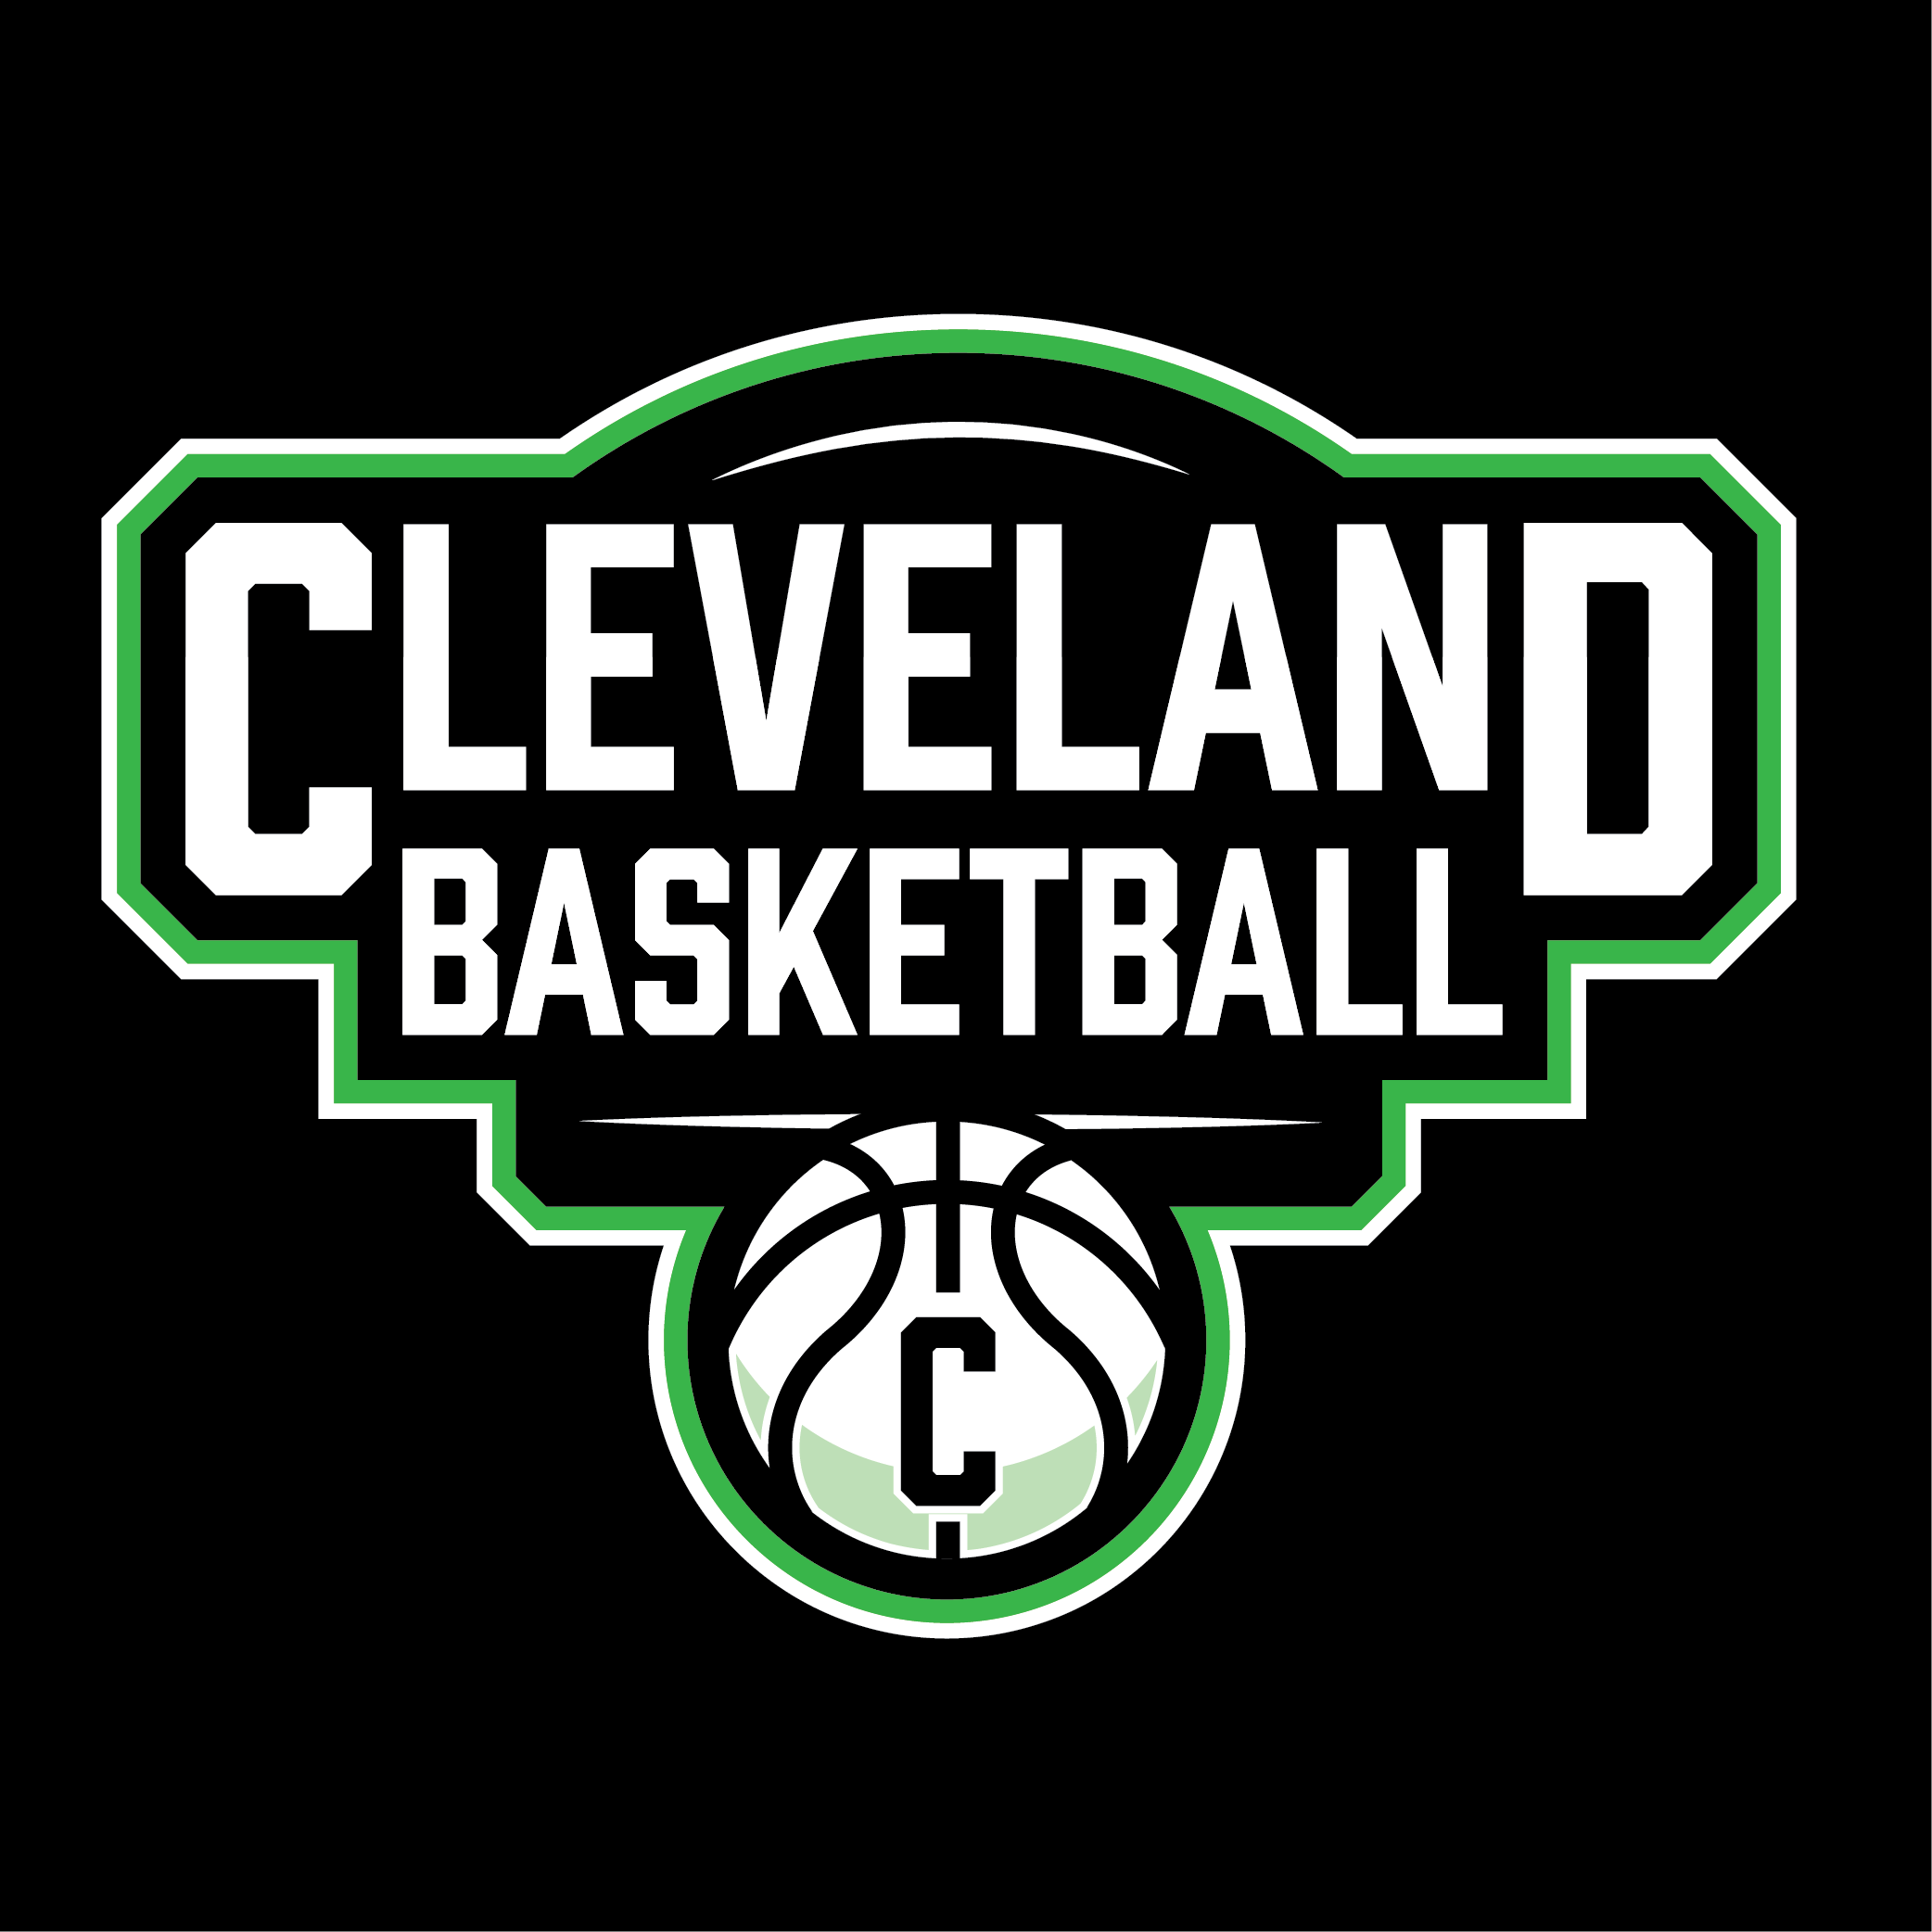 Summer Teams - Cleveland Basketball will be housing Summer teams for CHS athletes that will play in June & July. Families and players can choose to play just 1 or both months, with more local options being on the schedule for June, and more travel happening in July.Grades: 9th -12thTeams: Frosh, JV, VarsityTryouts/Evaluations for Team Placement: May 29, 5:30-7:30 at CHS